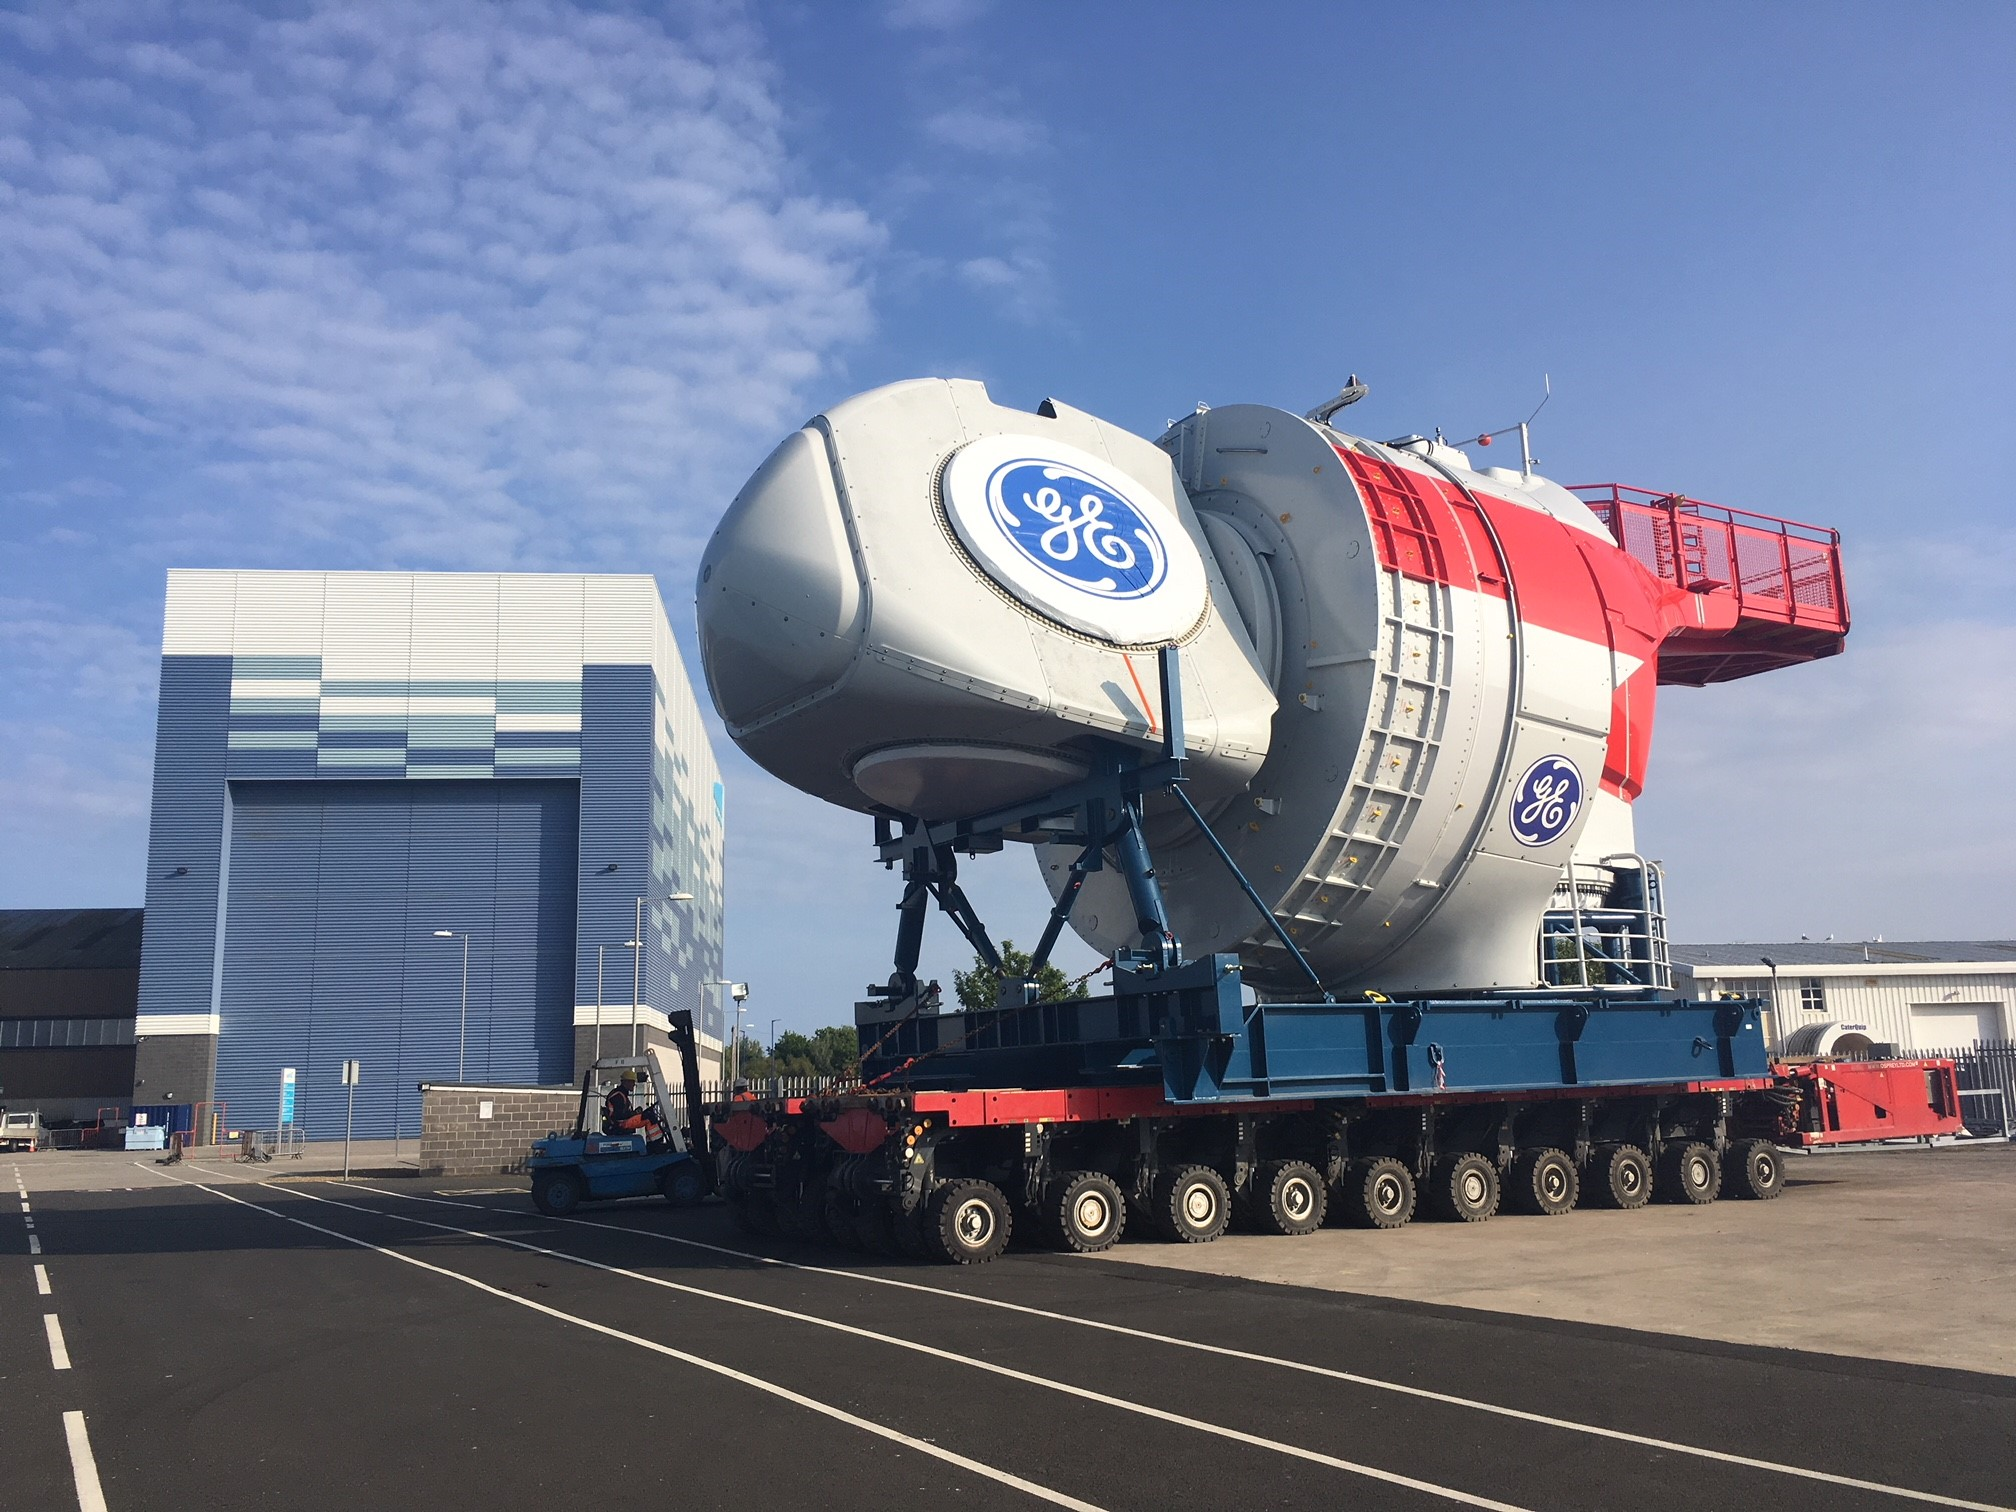 GE nacelle and the 15MW